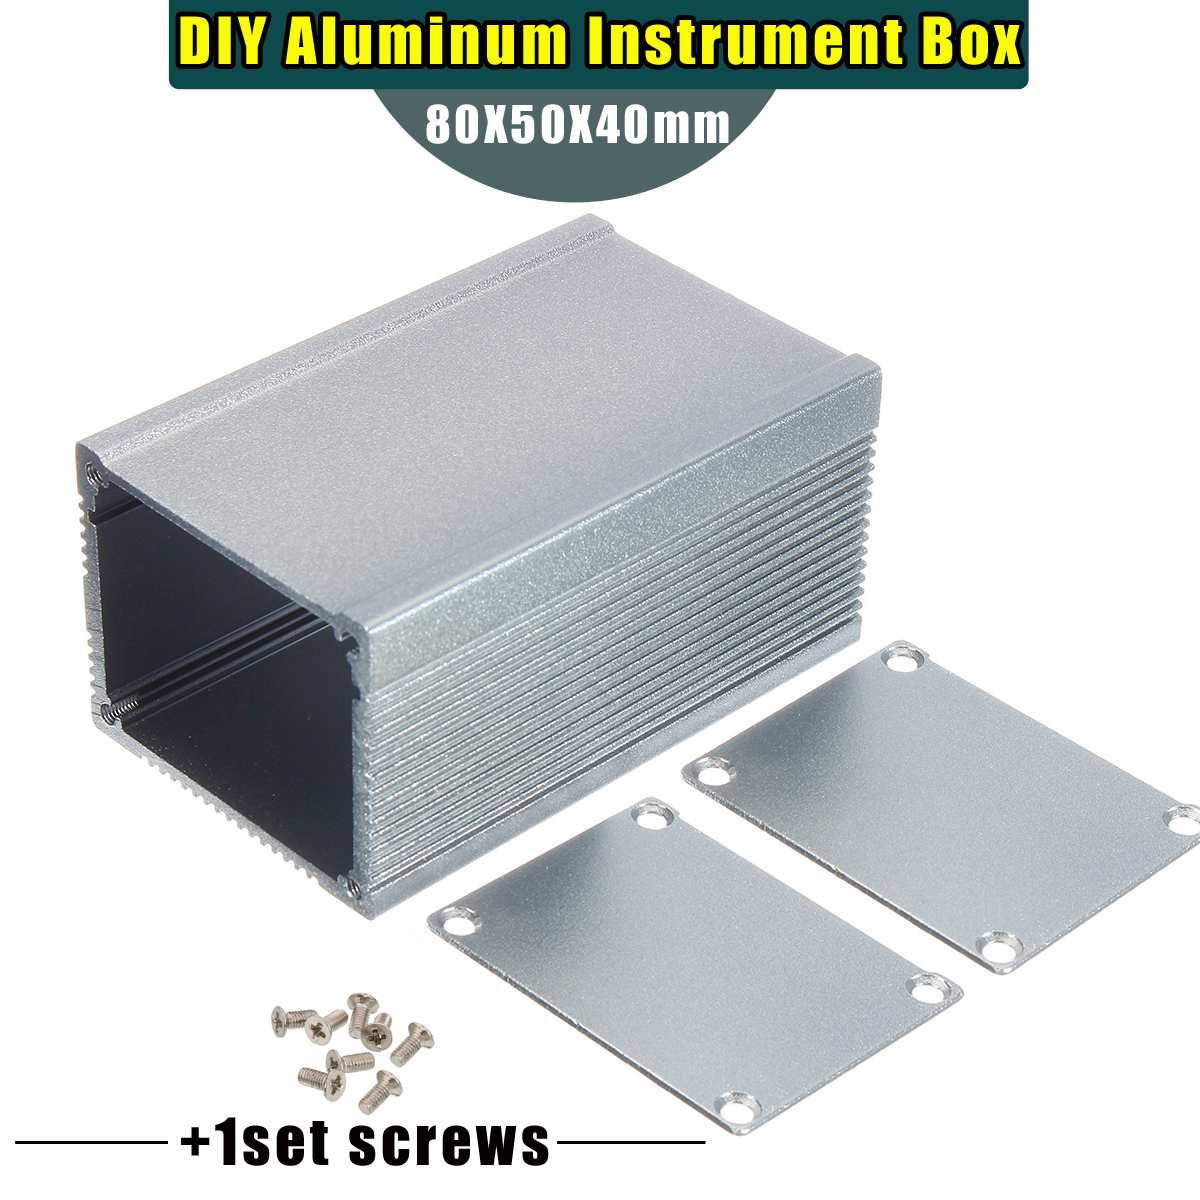 1x 80X50X40mm DIY Electronic Components Aluminum PCB Instrument Enclosure Case Electronic Project Box With 1 Set Screws NEW